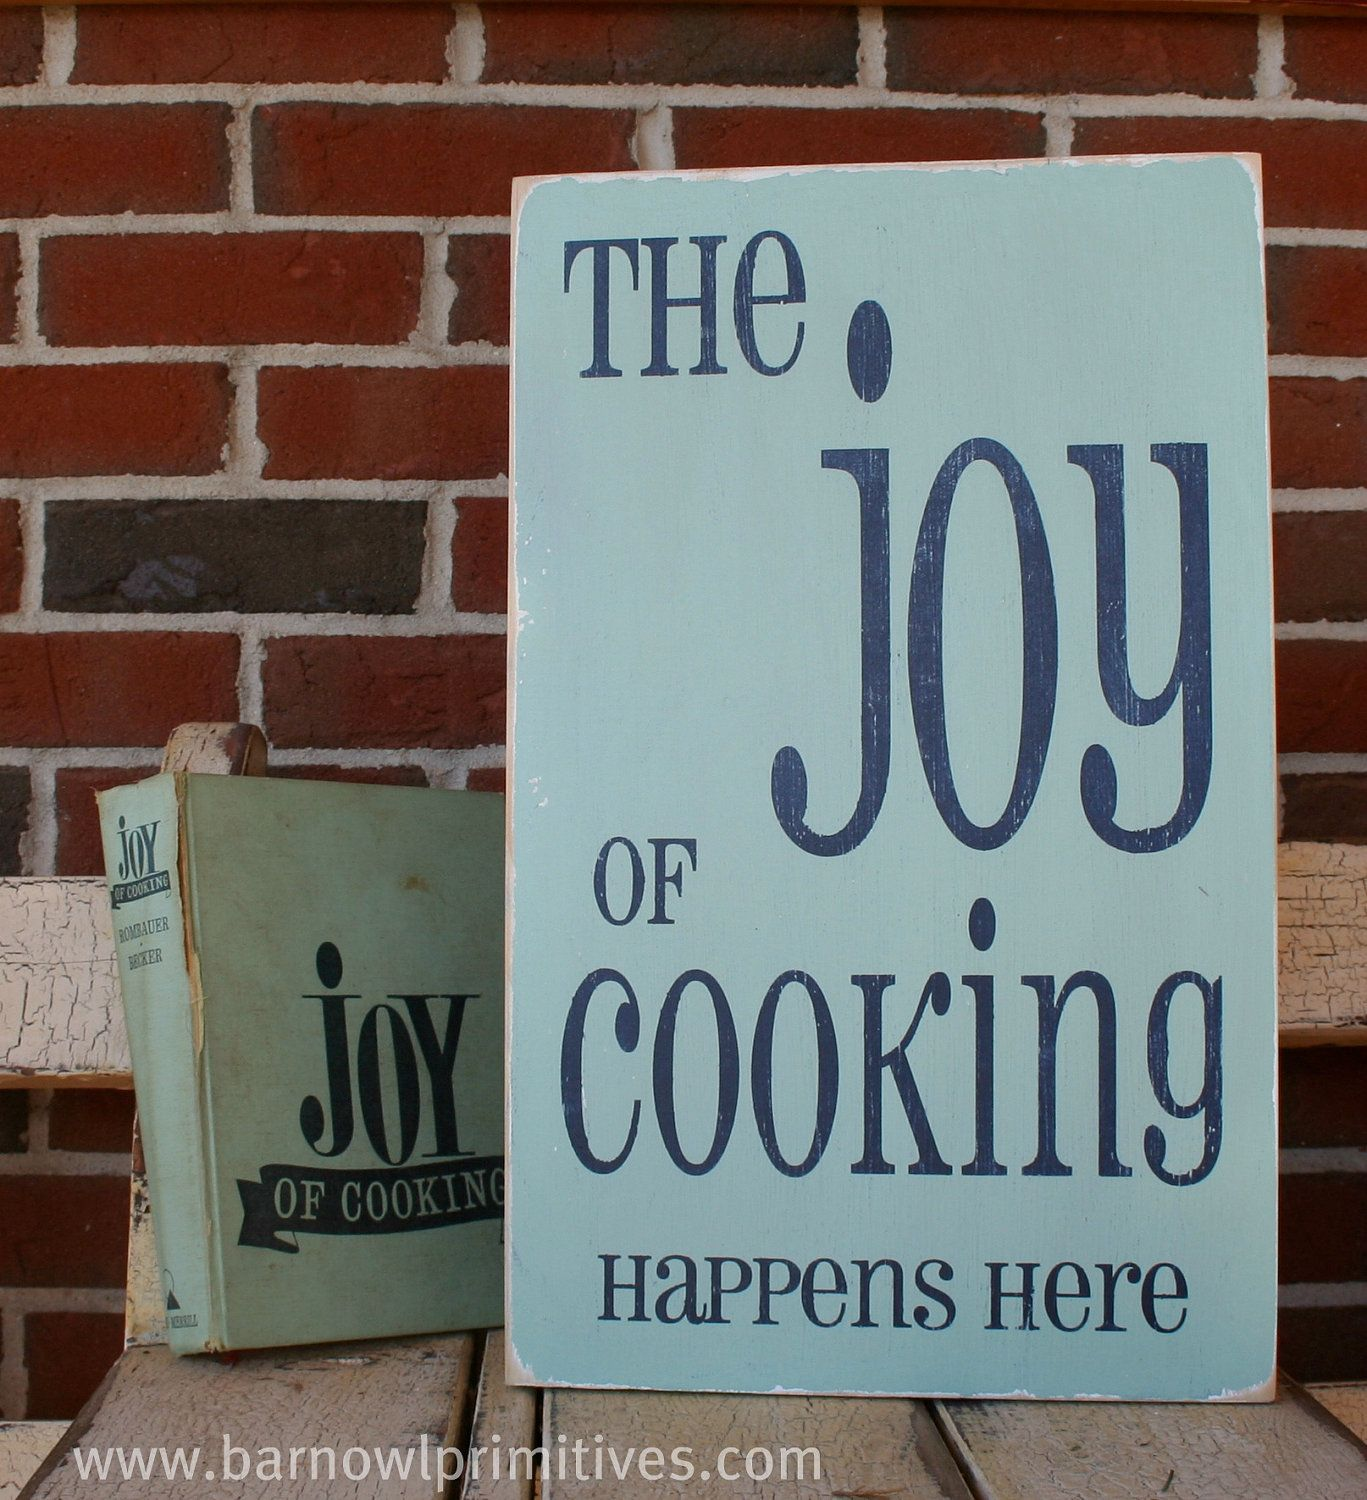 The Joy of Cooking Happens Here Distressed Vintage Style Sign ...